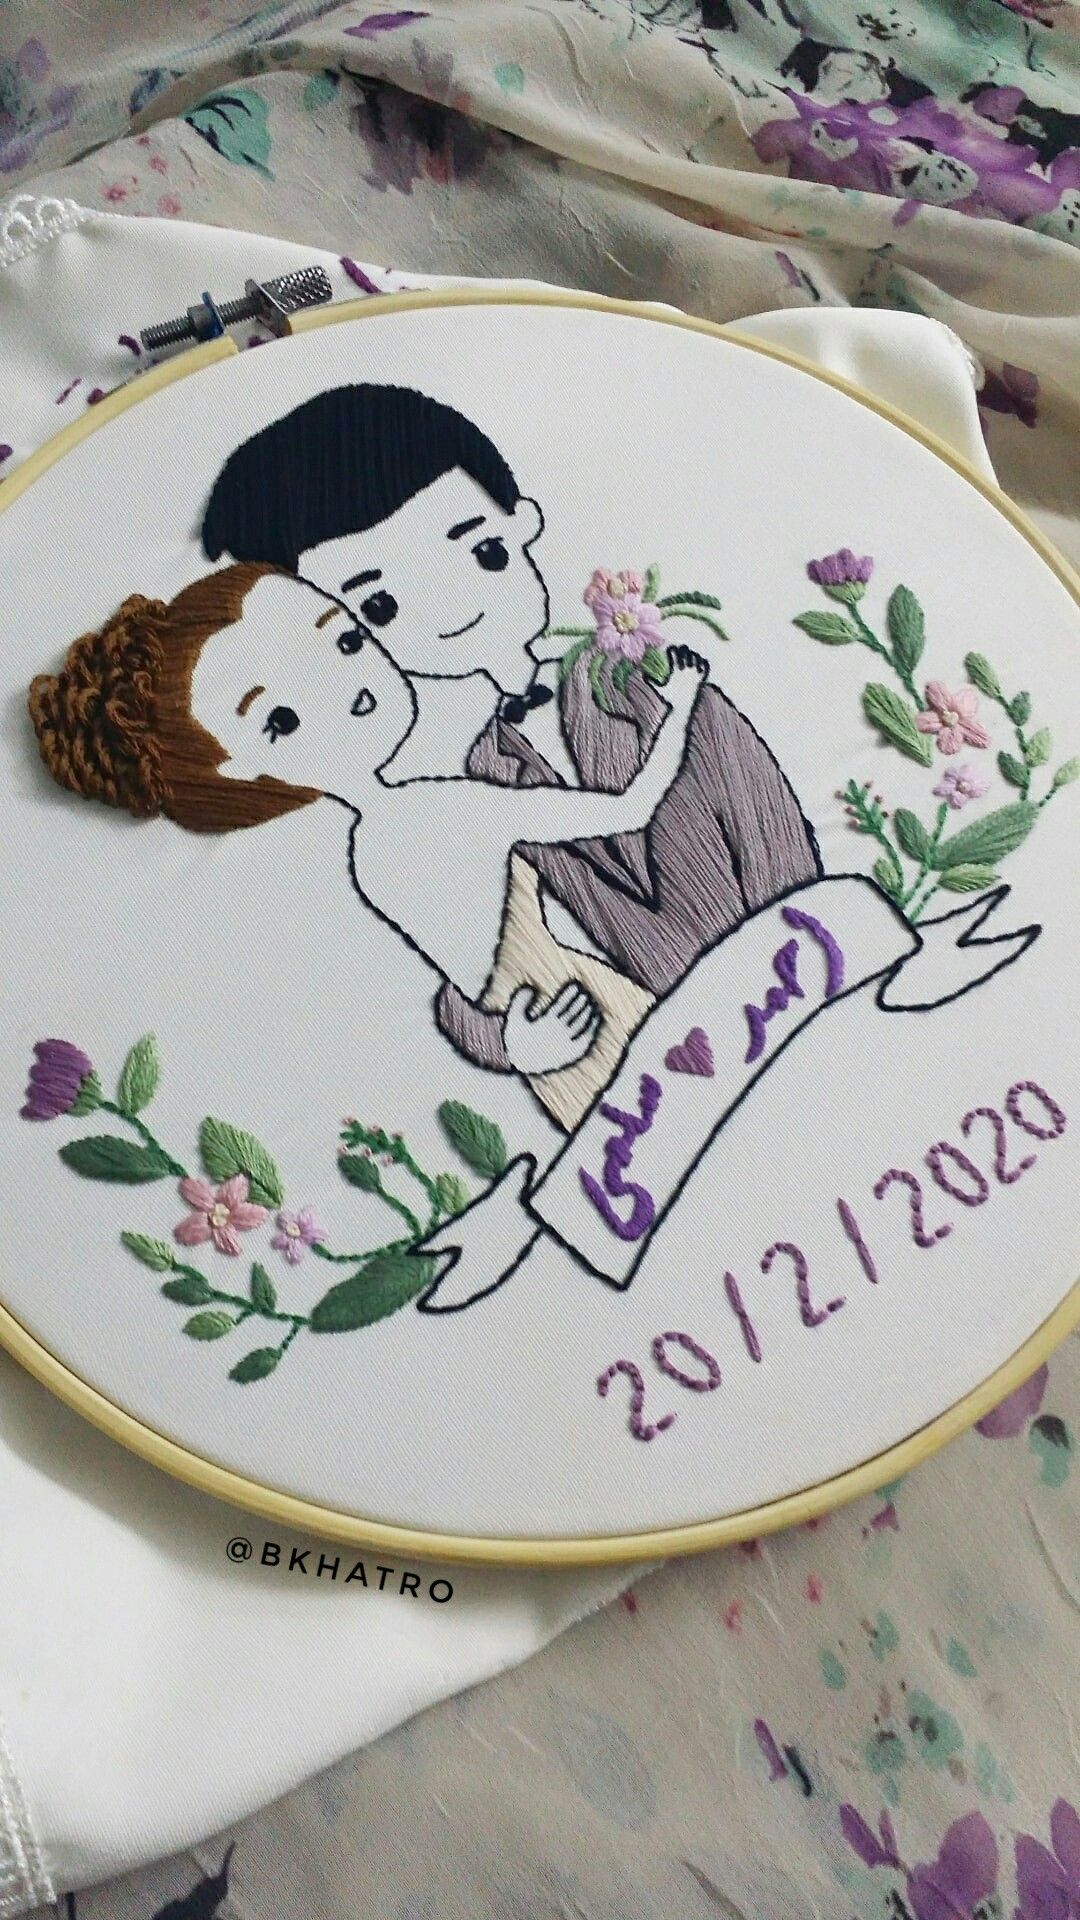 Couple Love Embroidery Design Engagement Birds Embroidery Designs Sewing Embroidery Designs Modern Hand Embroidery Patterns